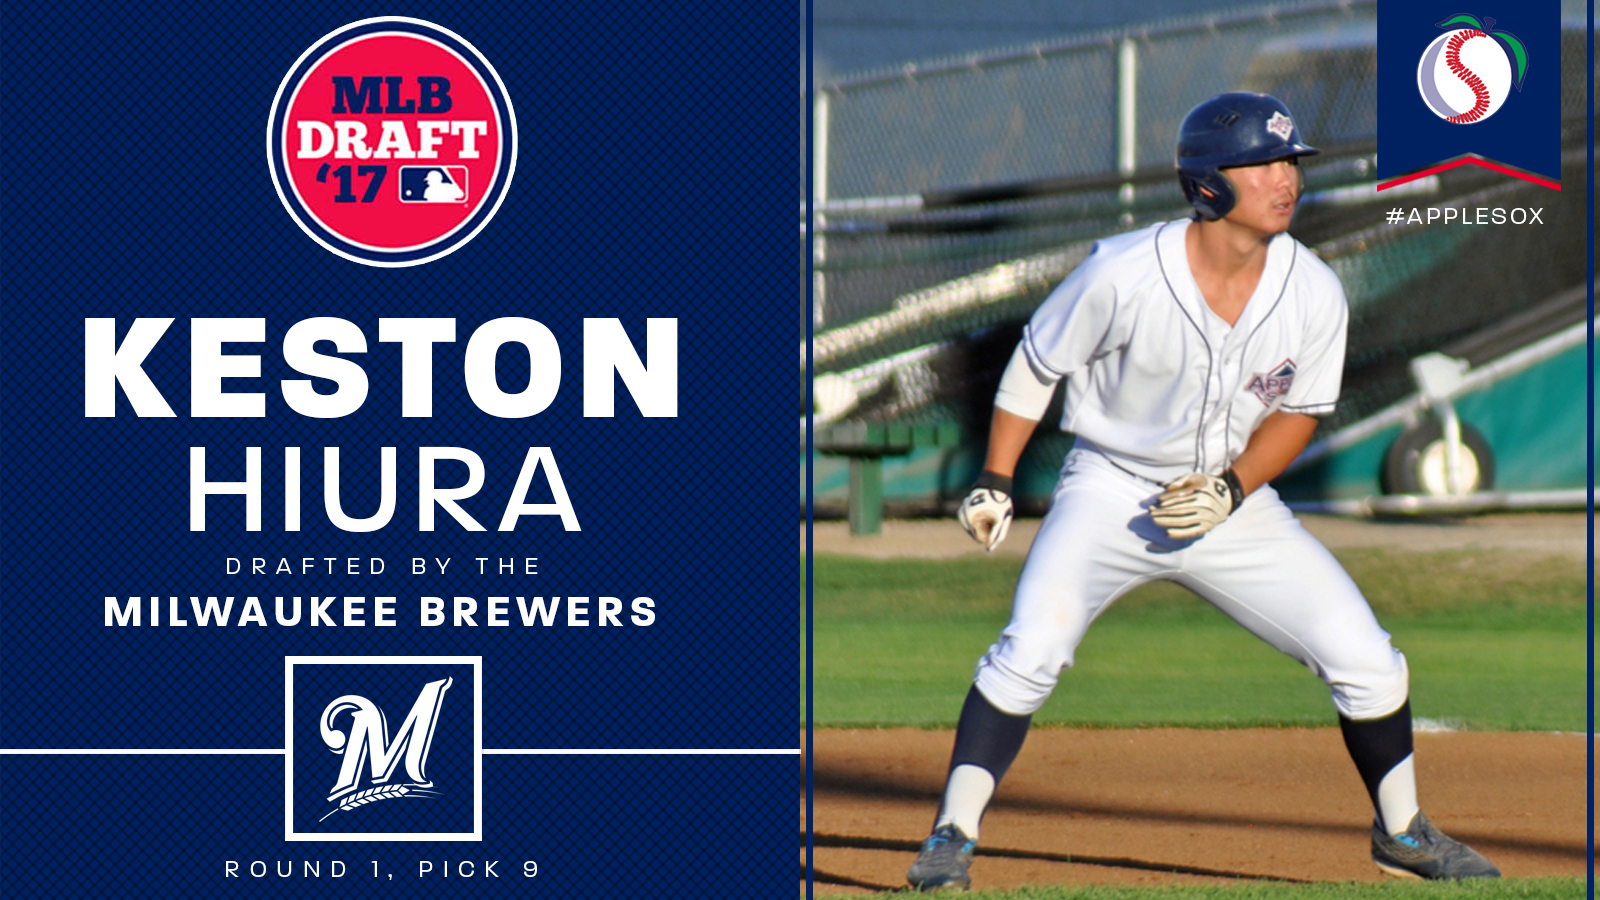 The Milwaukee Brewers took Keston Hiura with the 9th overall pick in the 2017 MLB Draft, to make him the highest MLB Draft pick in WCL history.